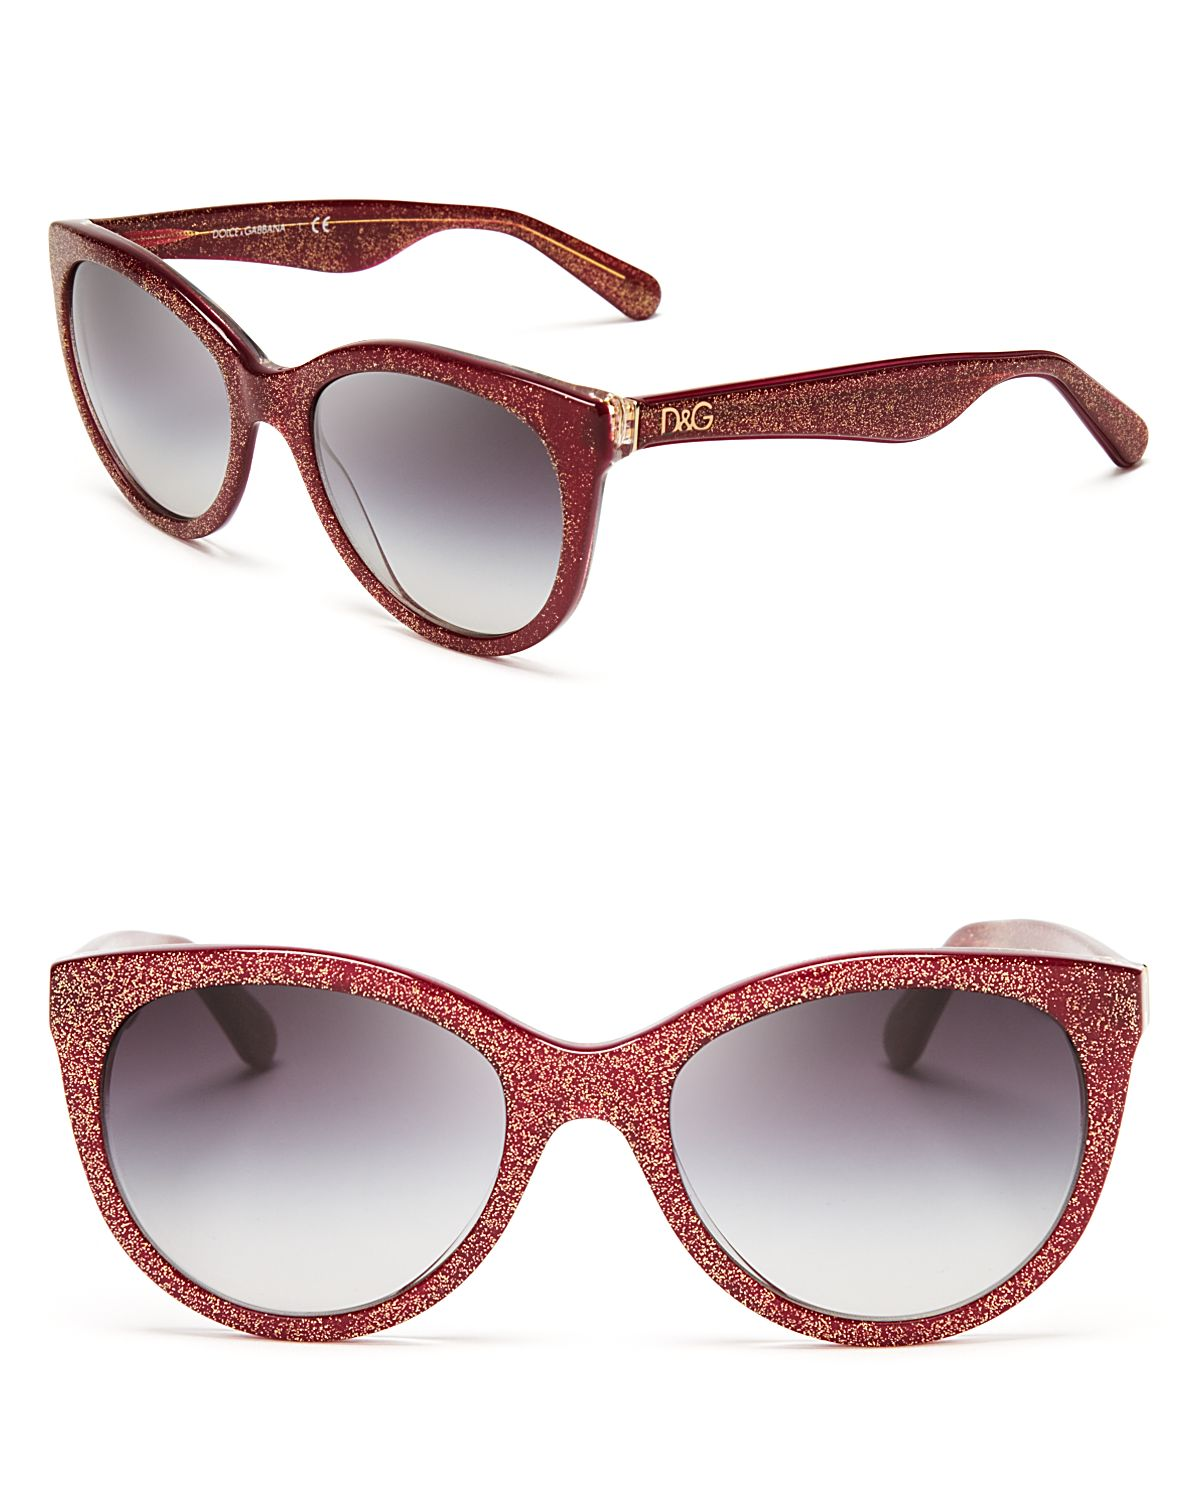 9a7b73a85570 Dolce & Gabbana Rounded Glitter Cat Eye Sunglasses in Red - Lyst